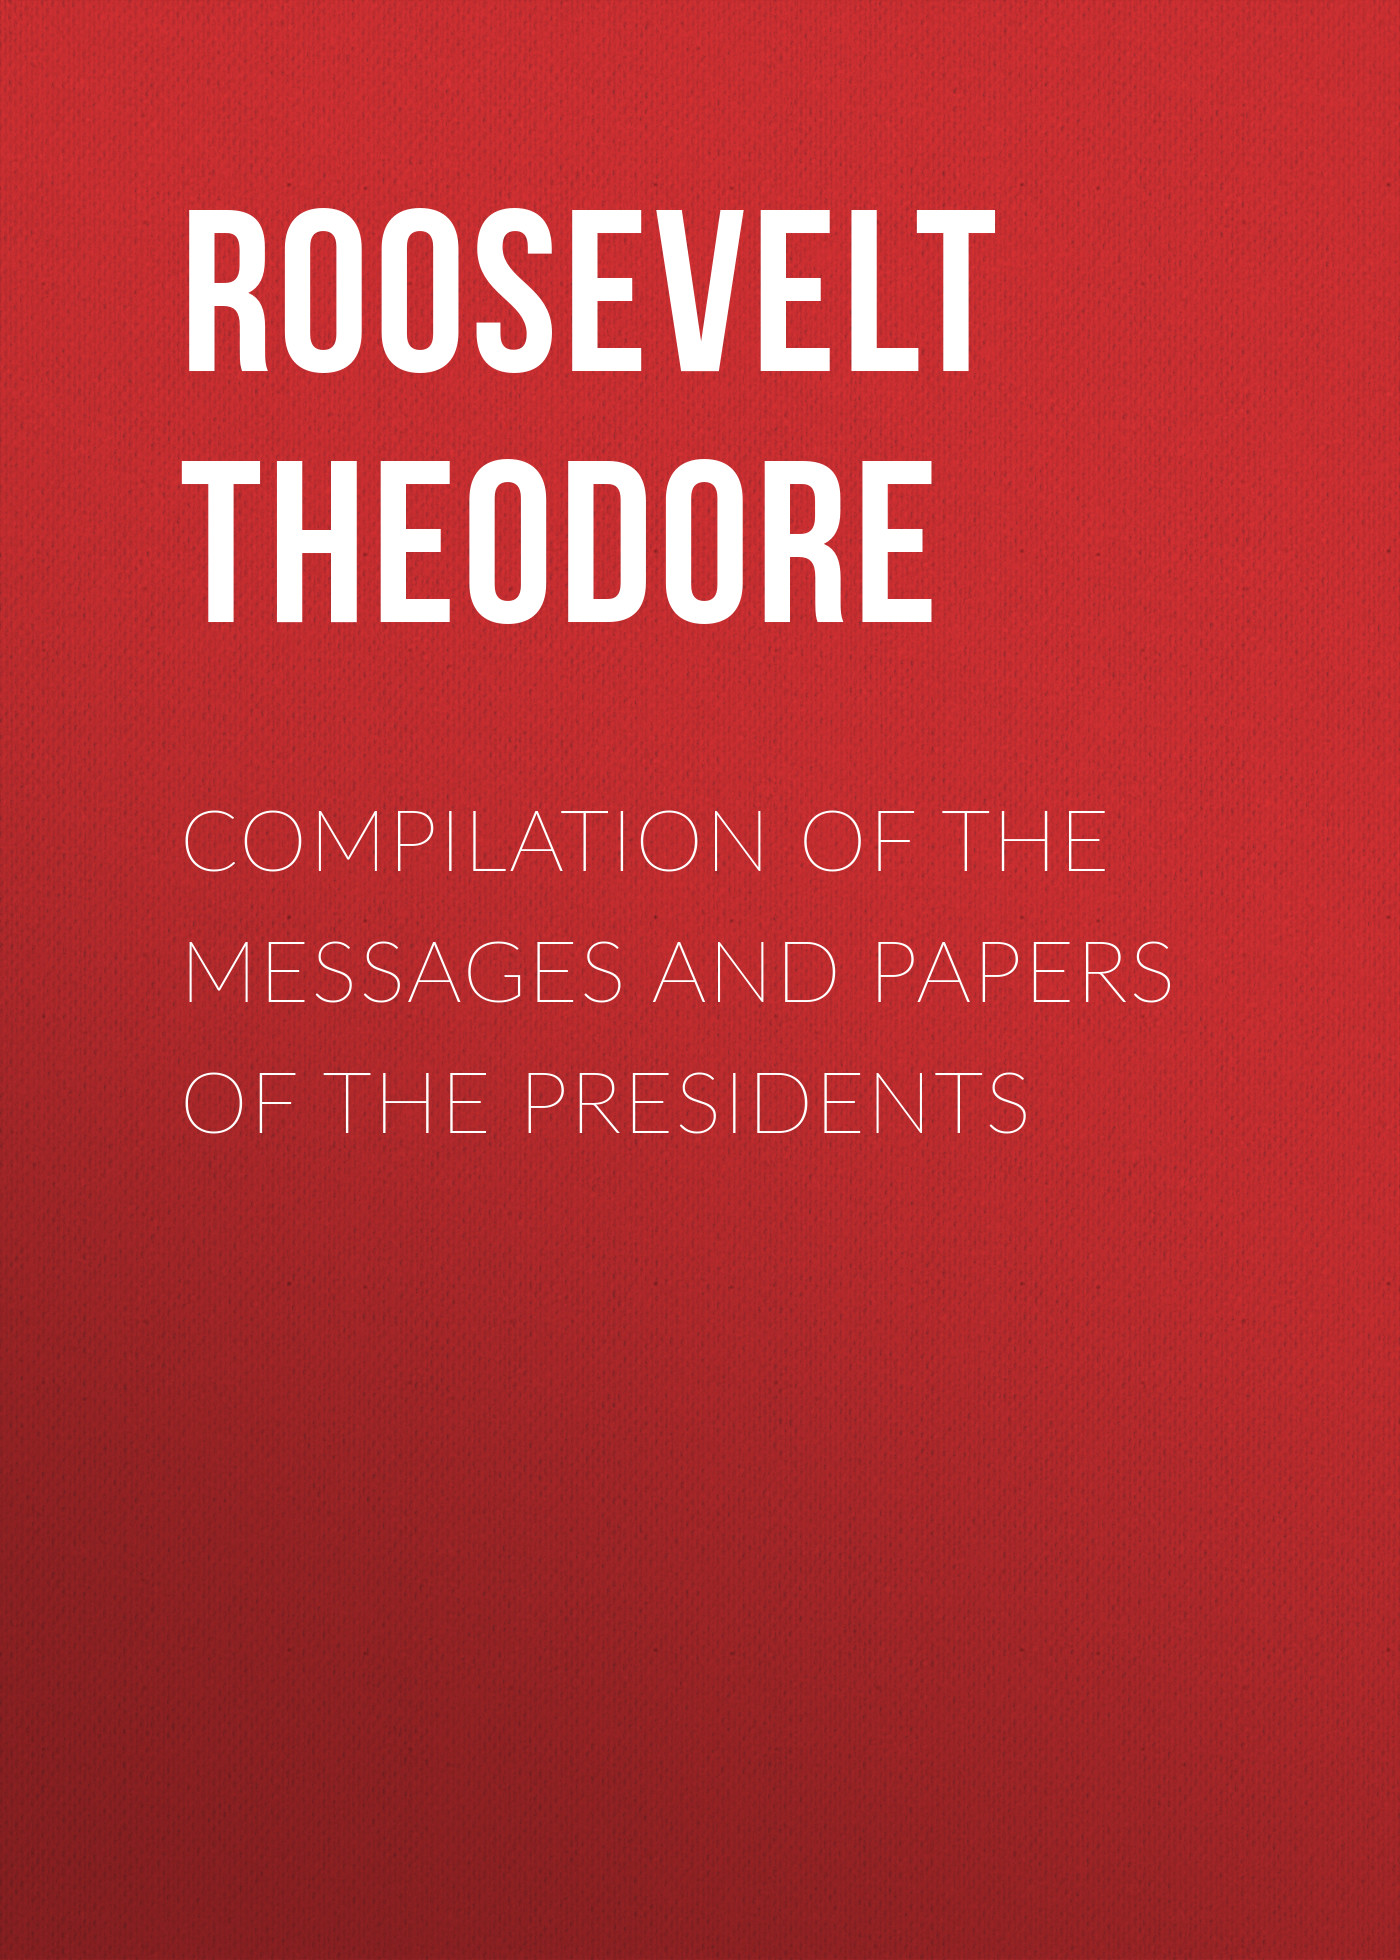 Roosevelt Theodore Compilation of the Messages and Papers of the Presidents my brother theodore roosevelt